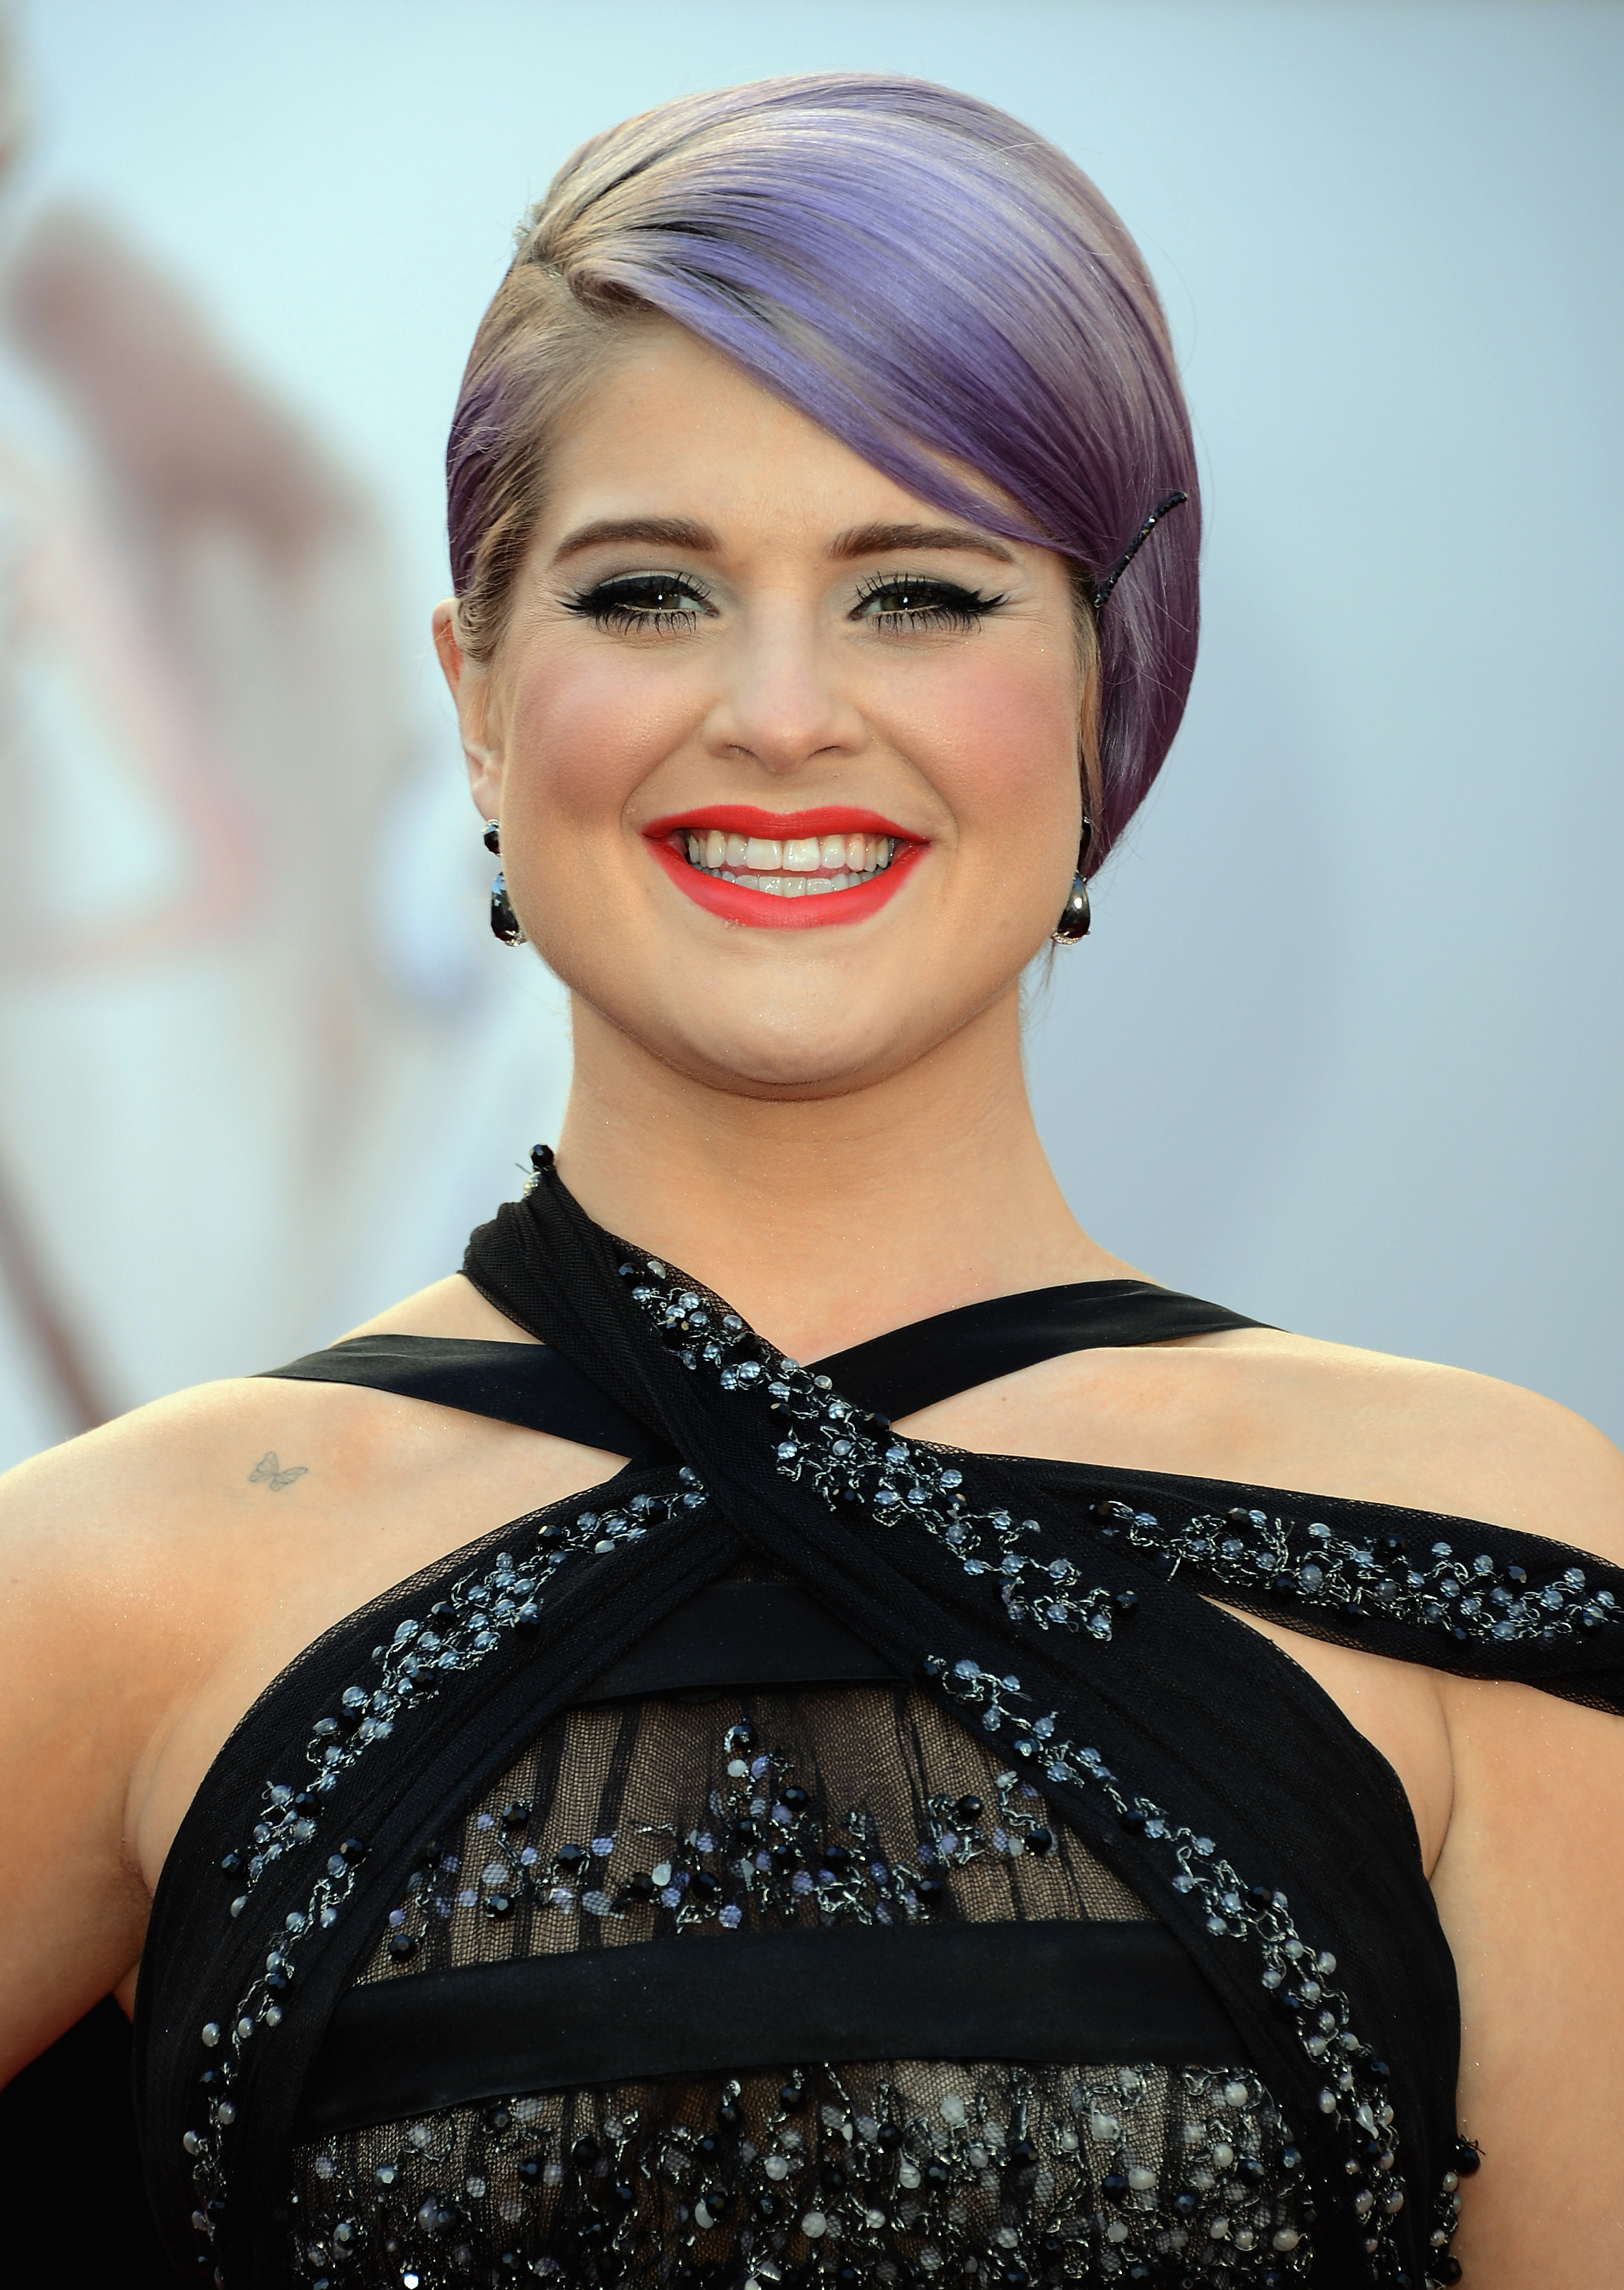 Kelly Osbourne on the red carpet at the Oscars 2013.